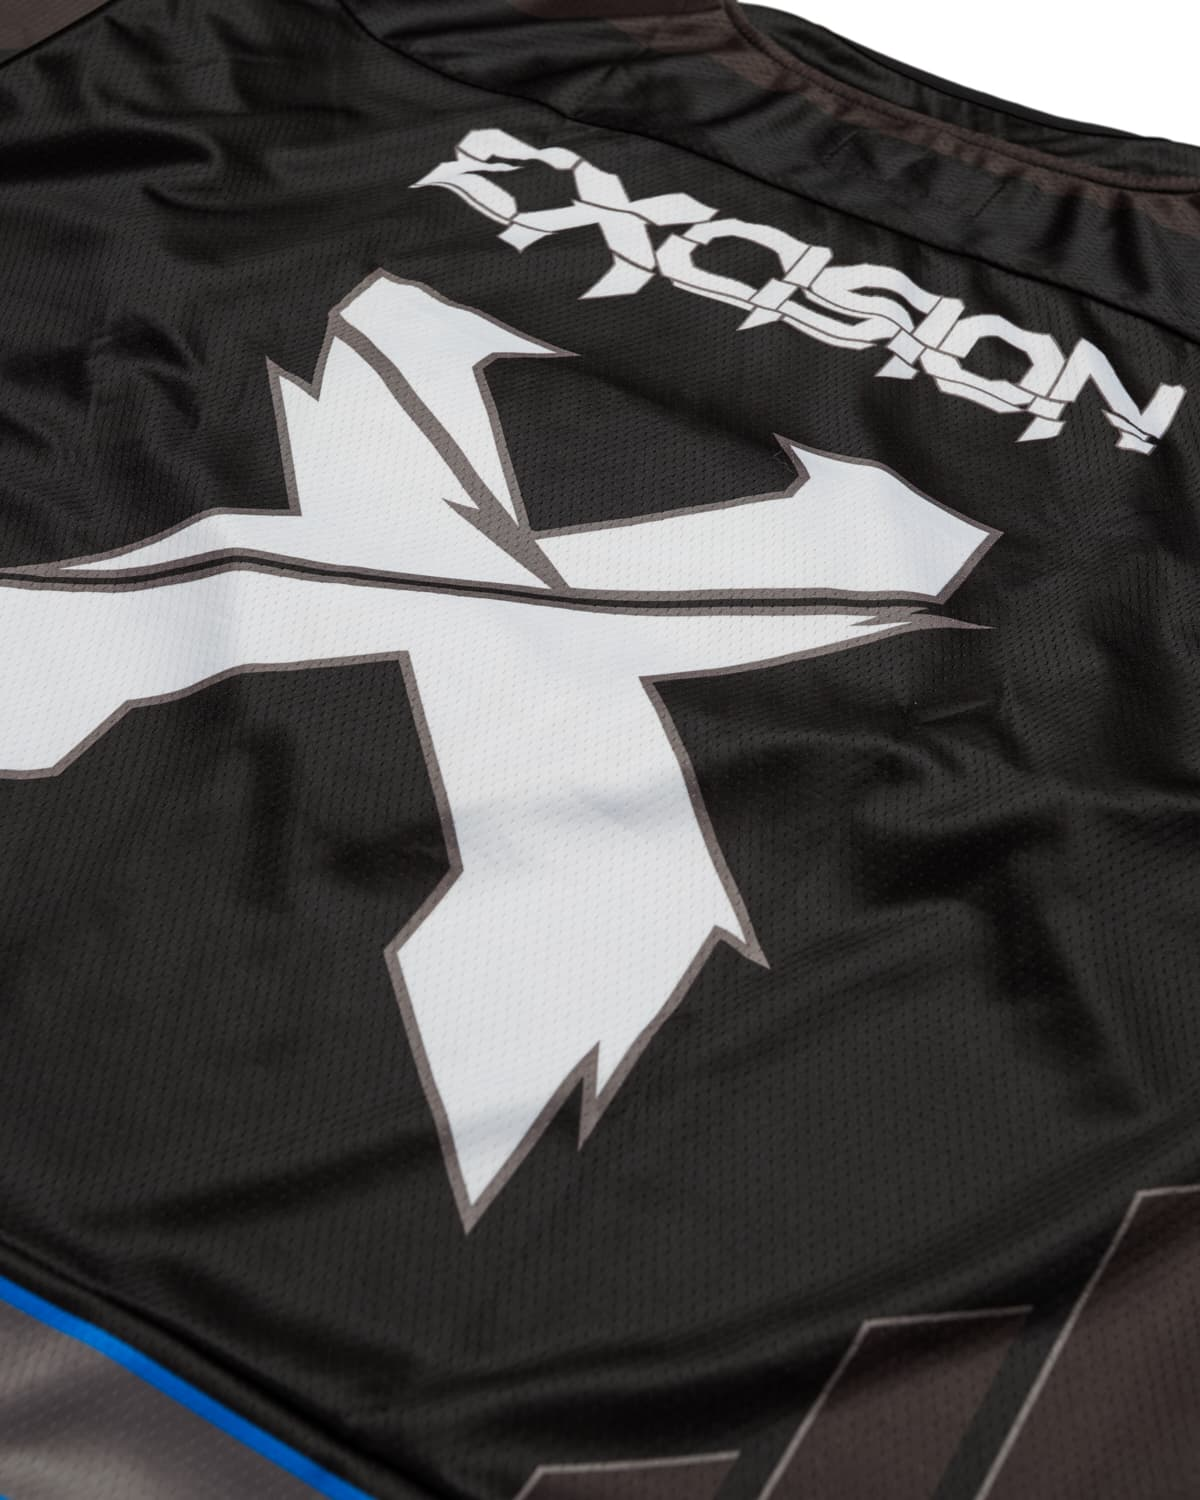 Excision Rex Unisex Hockey Jersey - Blue